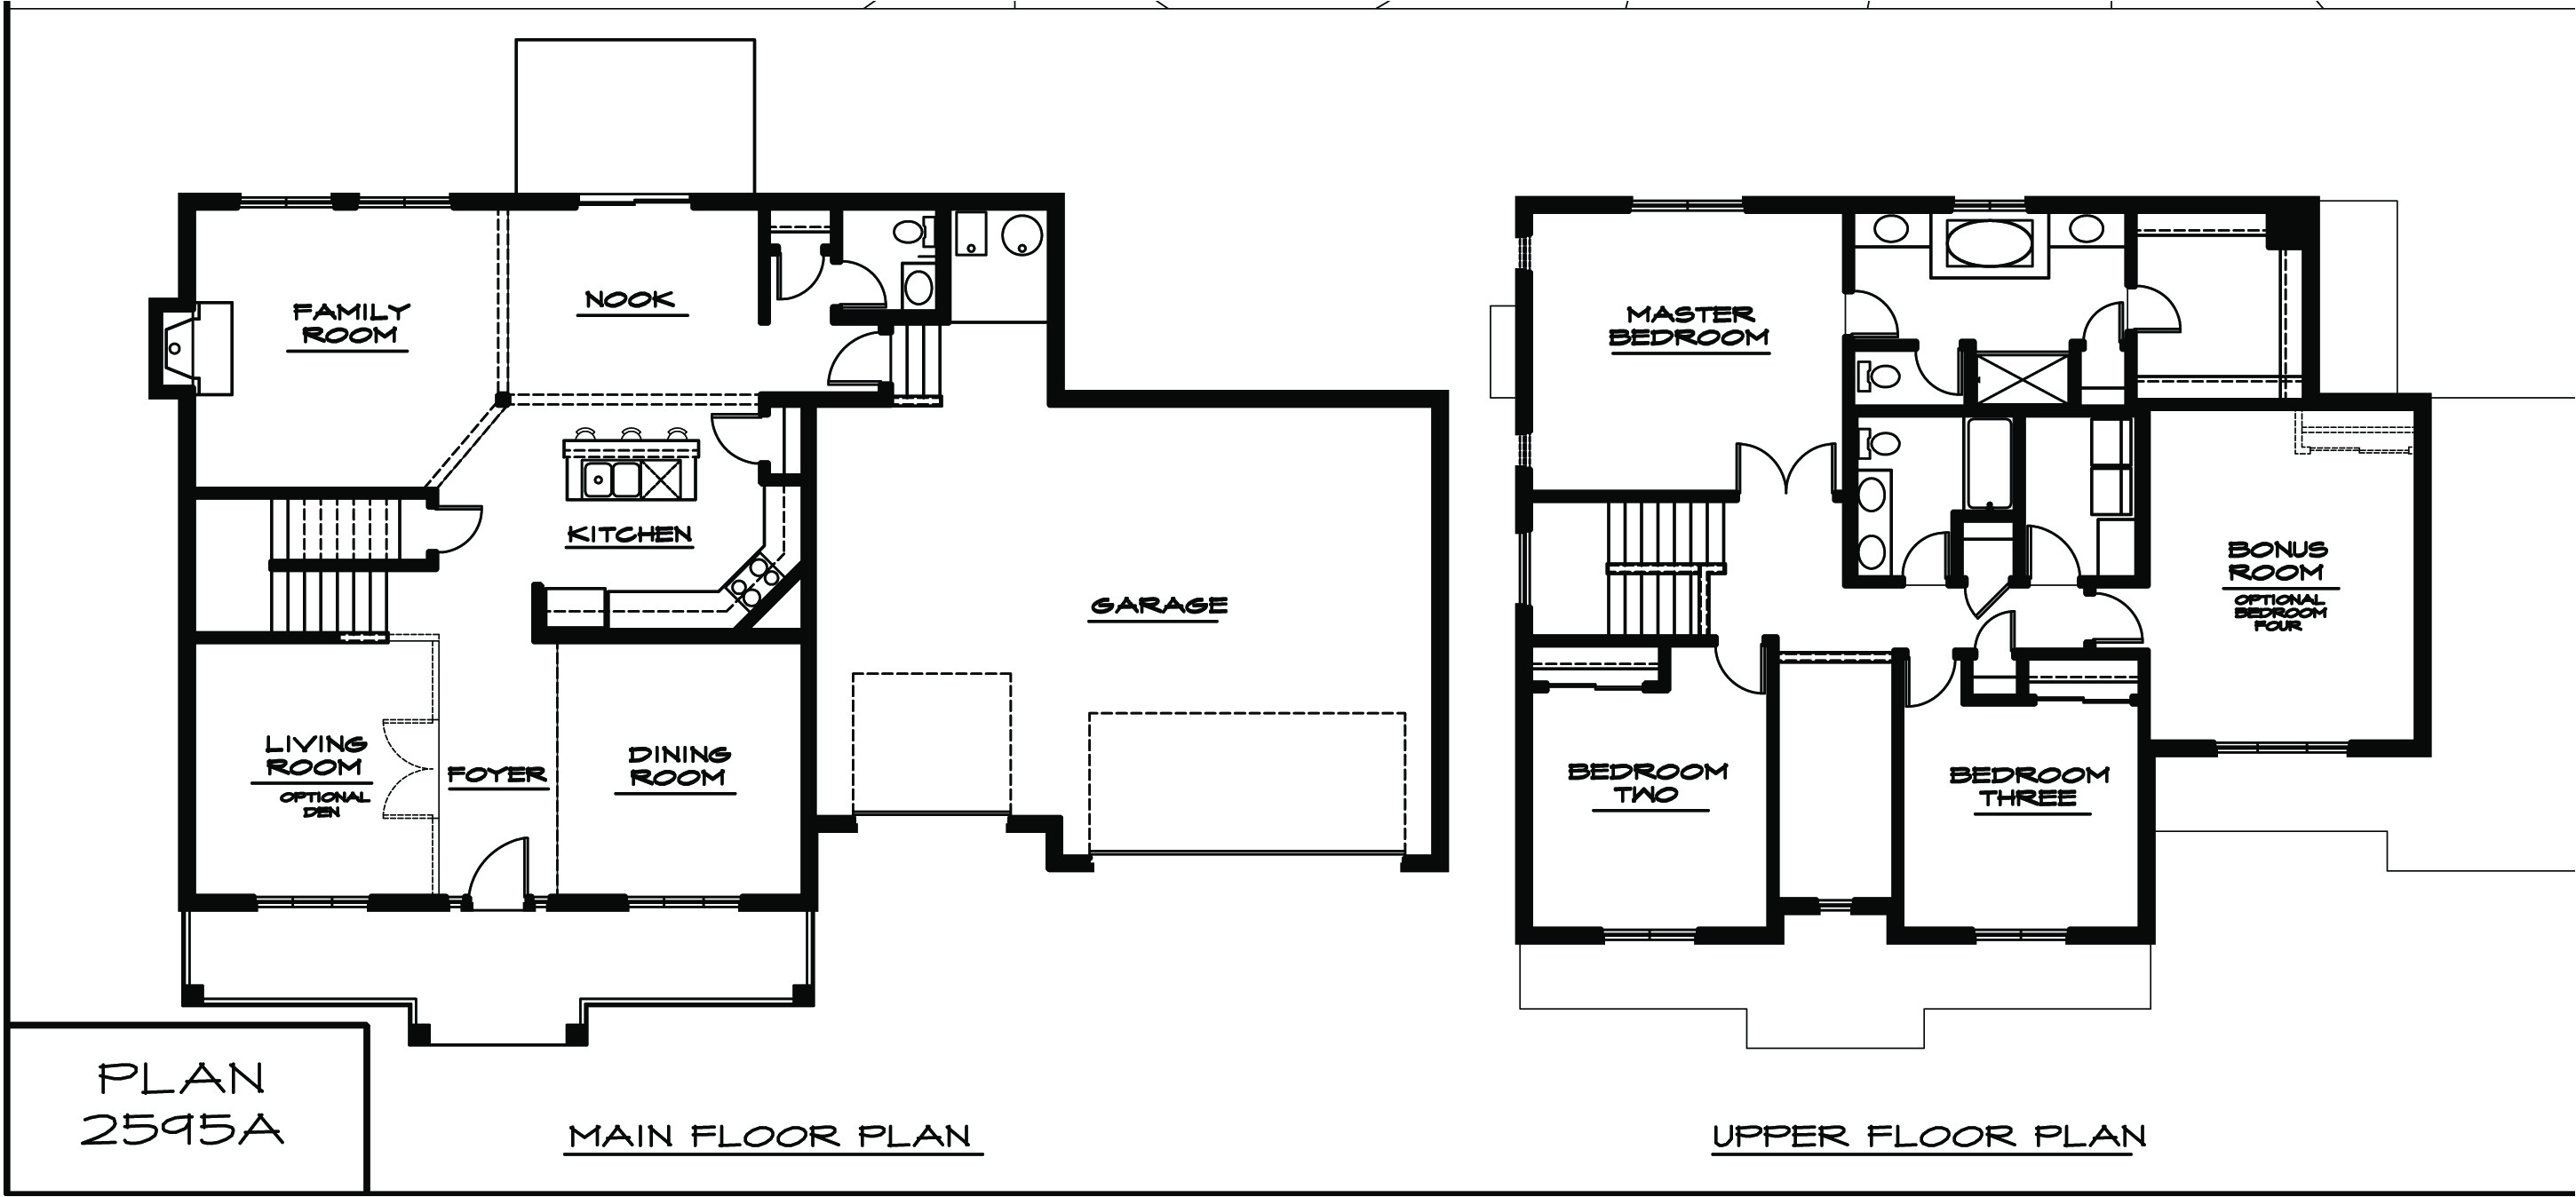 Two Story Home Floor Plans Architecture 4 Story House Plans with 3 Bedrooms Two